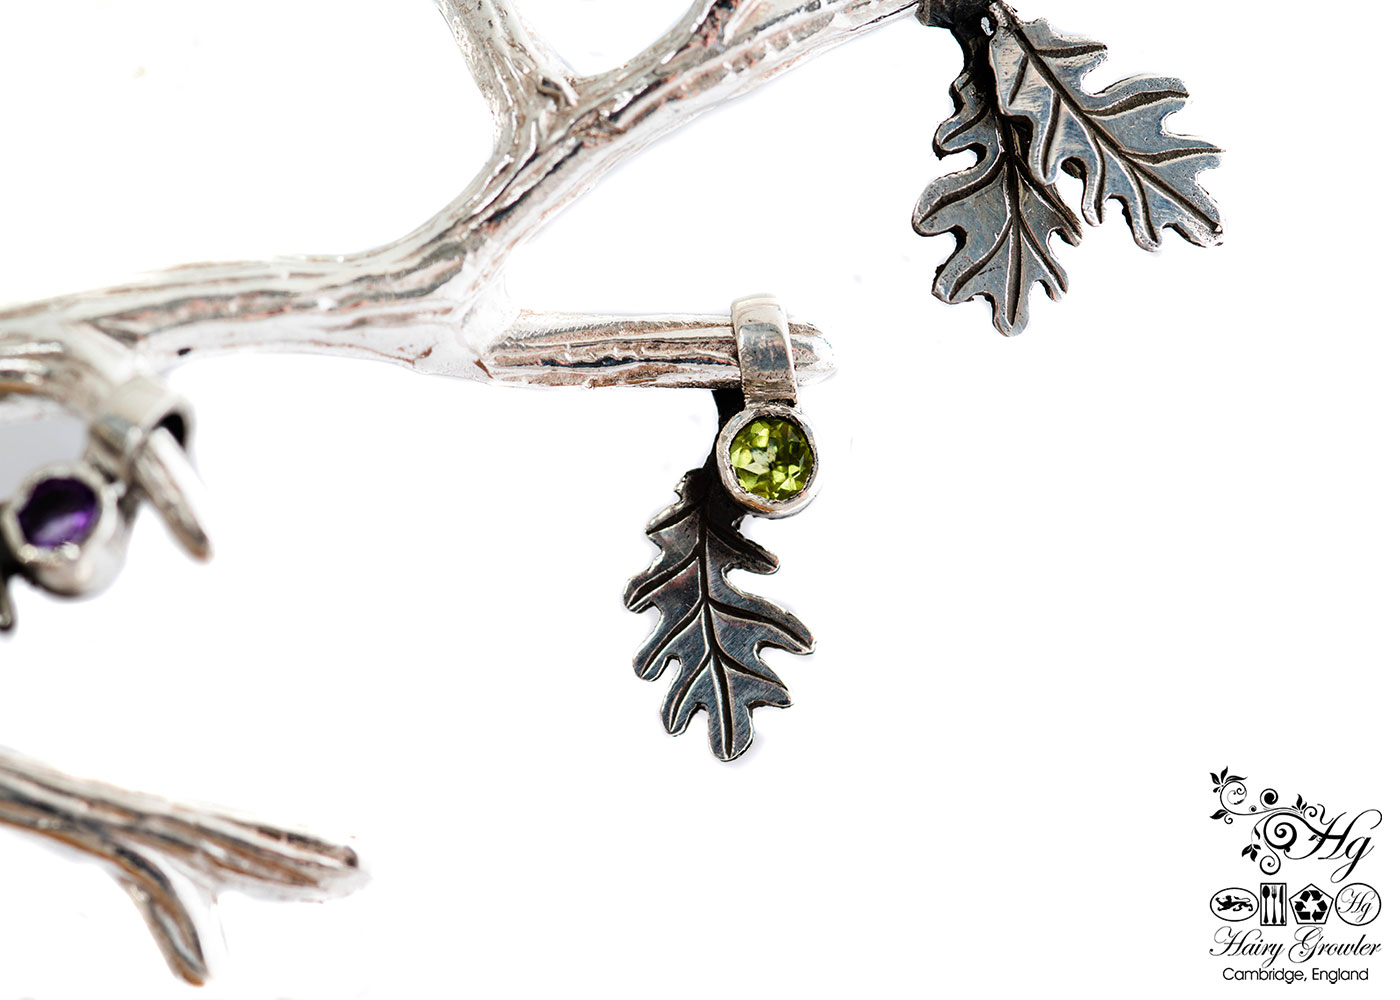 handcrafted silver and peridot oak leaf charm for a tree sculpture, necklace or bracelet